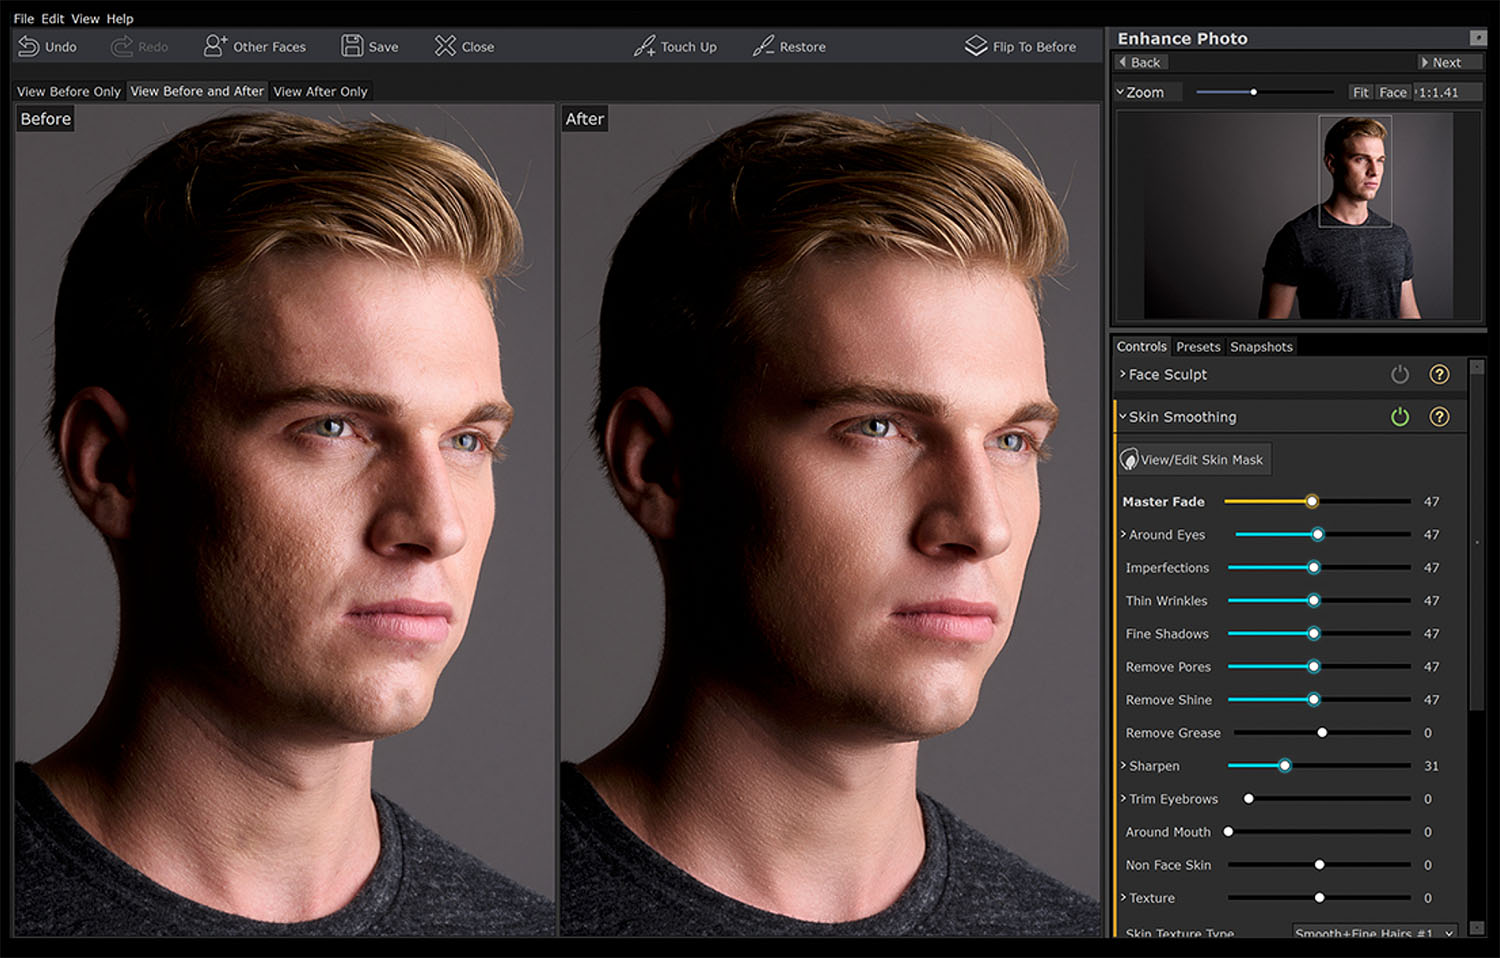 Anthropics Portrait Pro 2 post-processing software